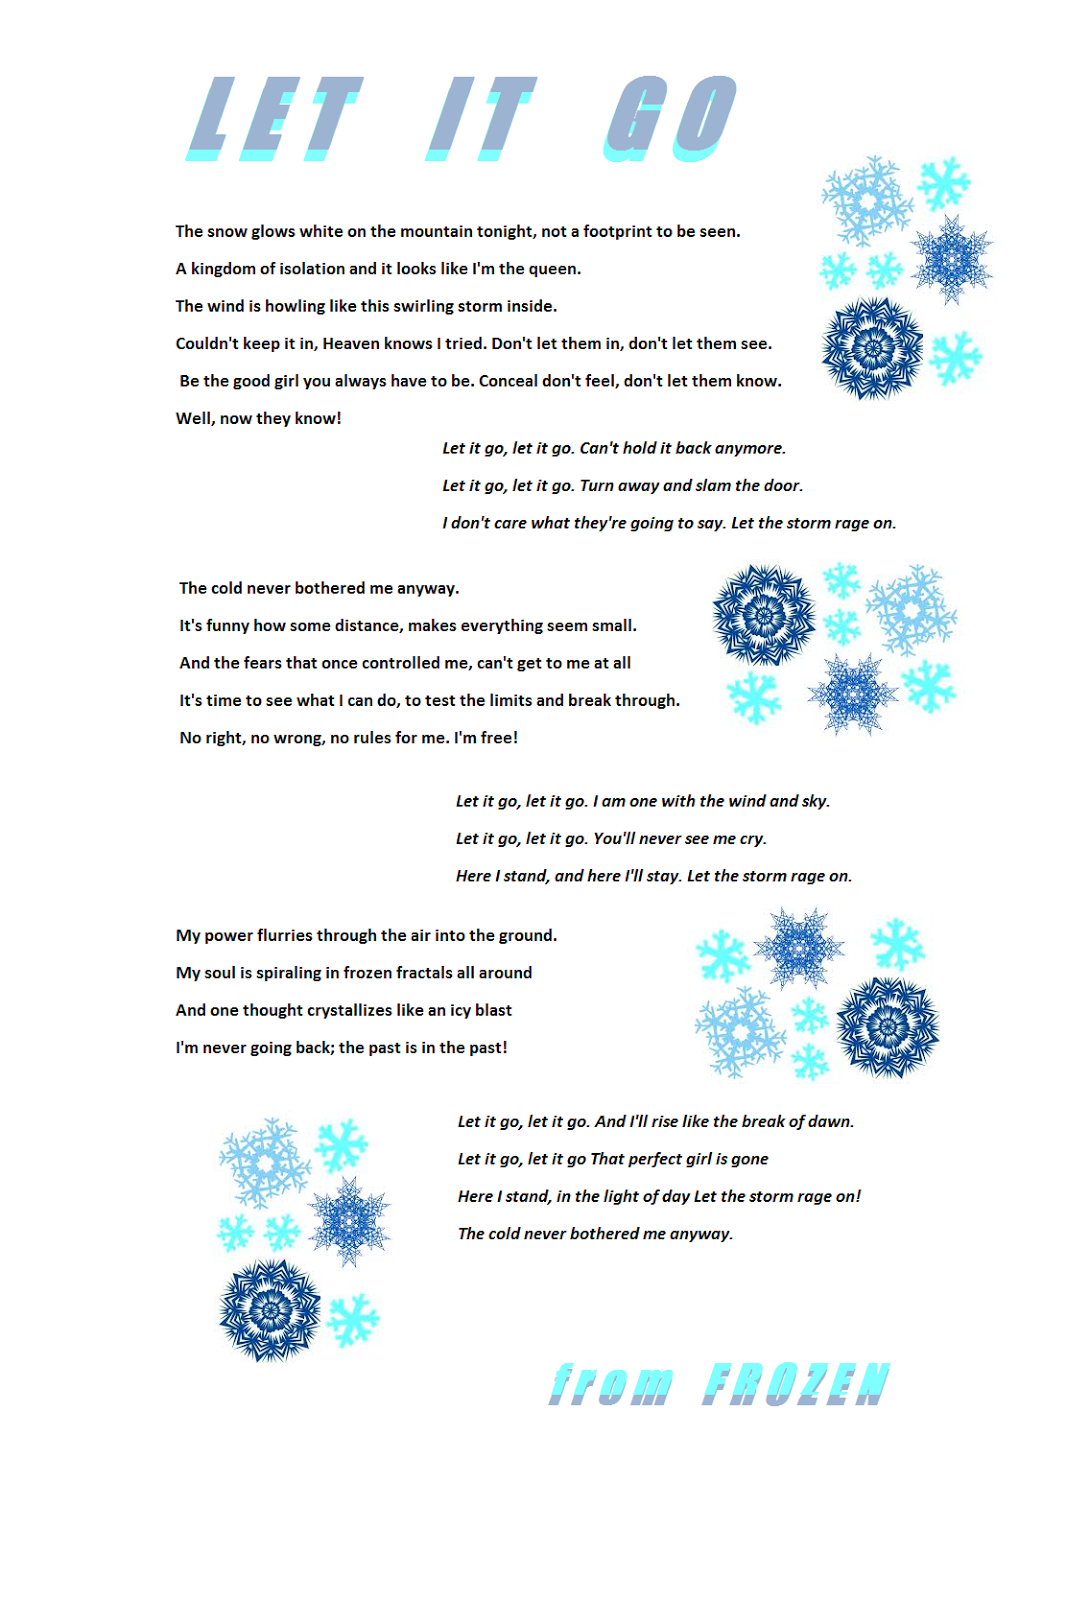 Let it go lyrics | Frozen lyrics | Pinterest